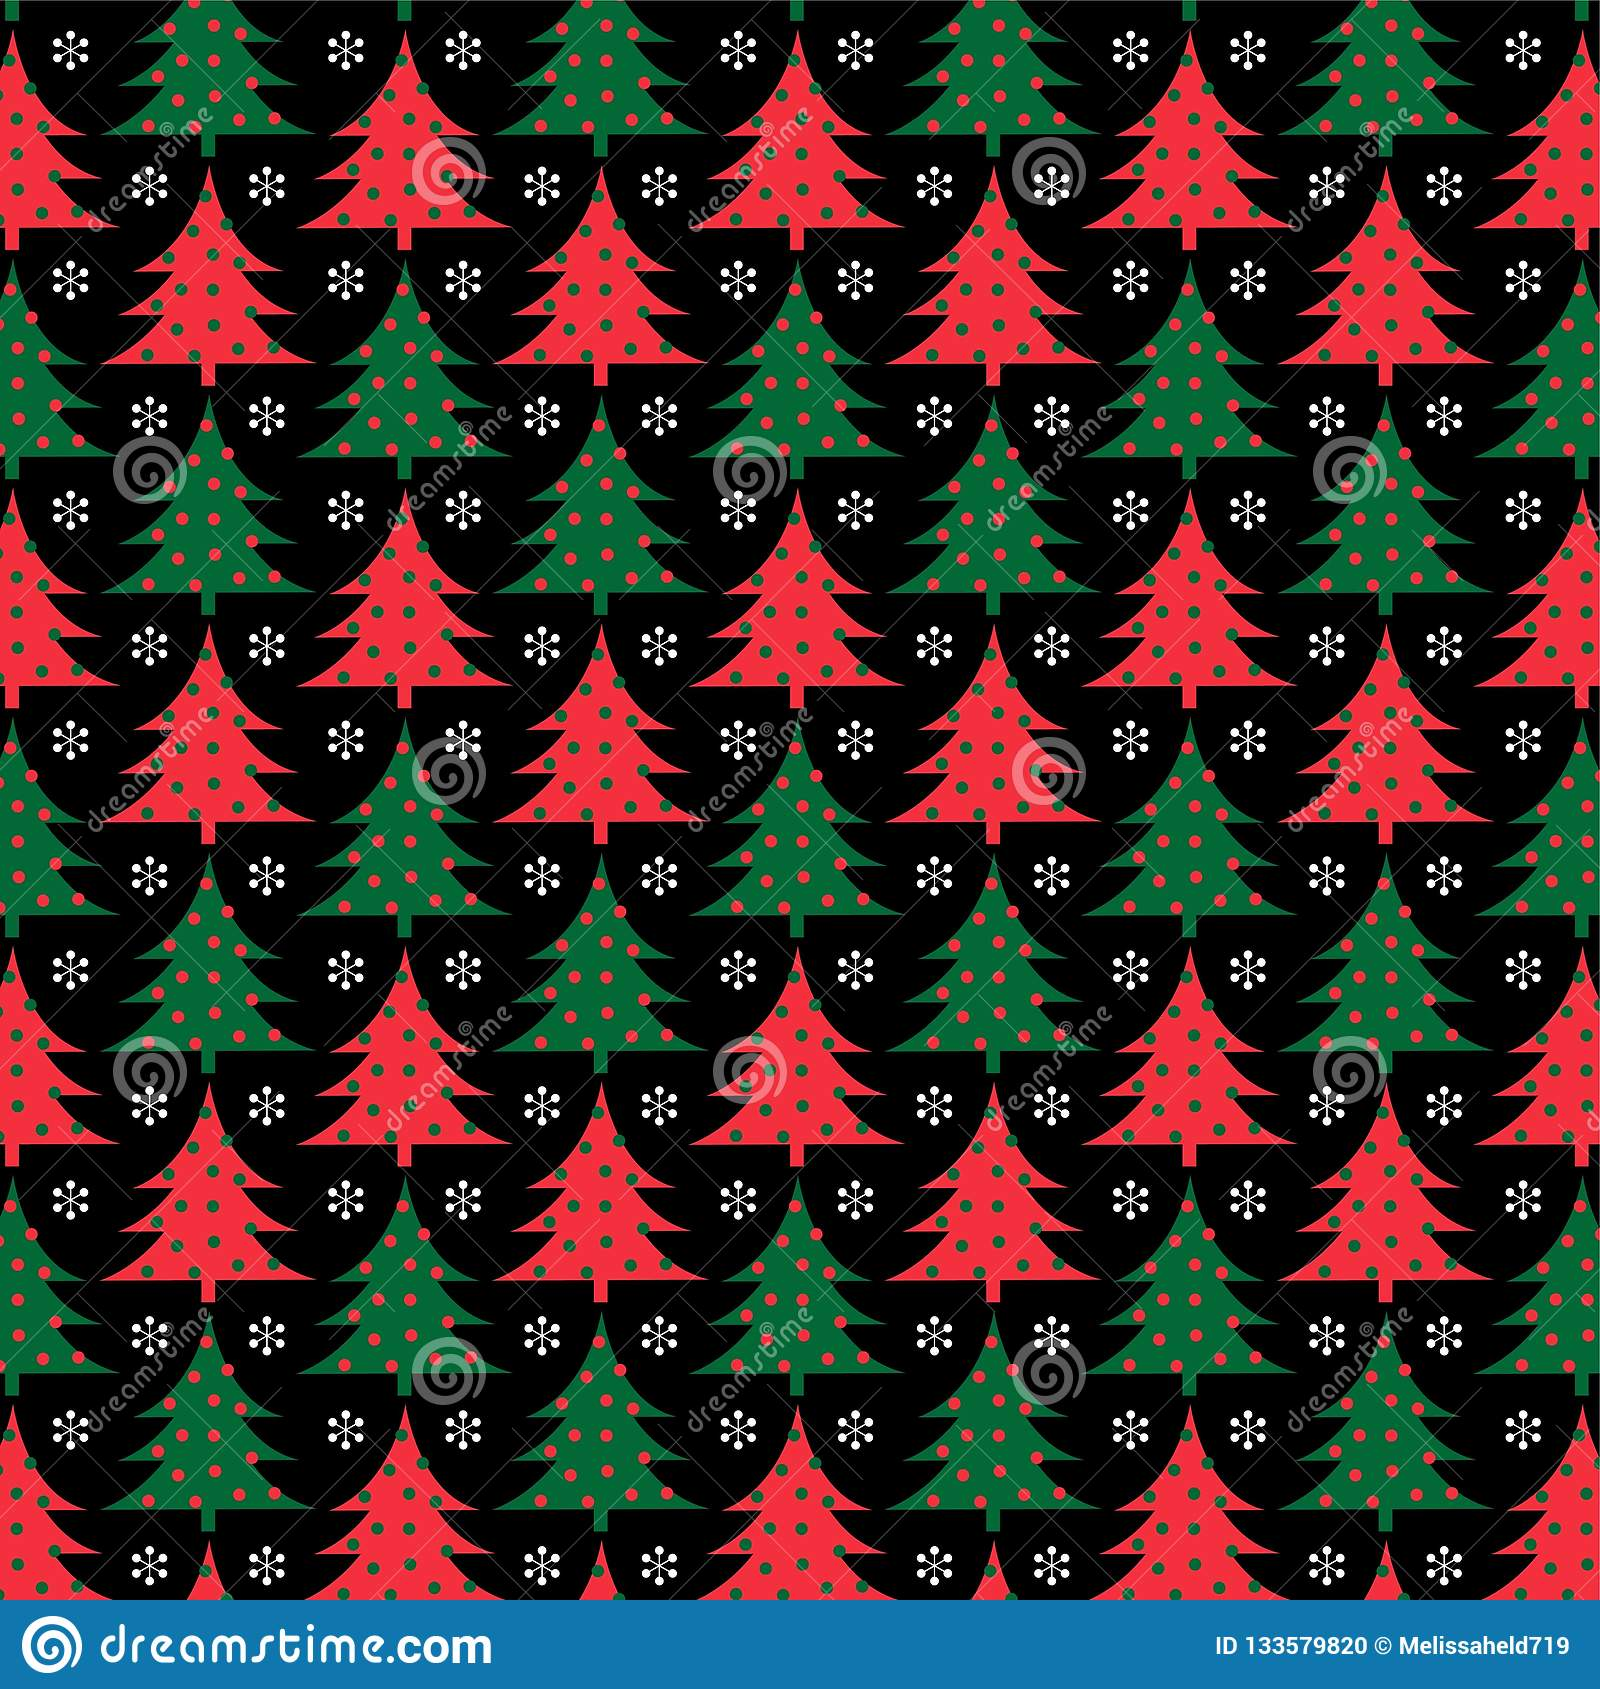 Black Christmas Red Tree Stock Illustrations 11 894 Black Christmas Red Tree Stock Illustrations Vectors Clipart Dreamstime